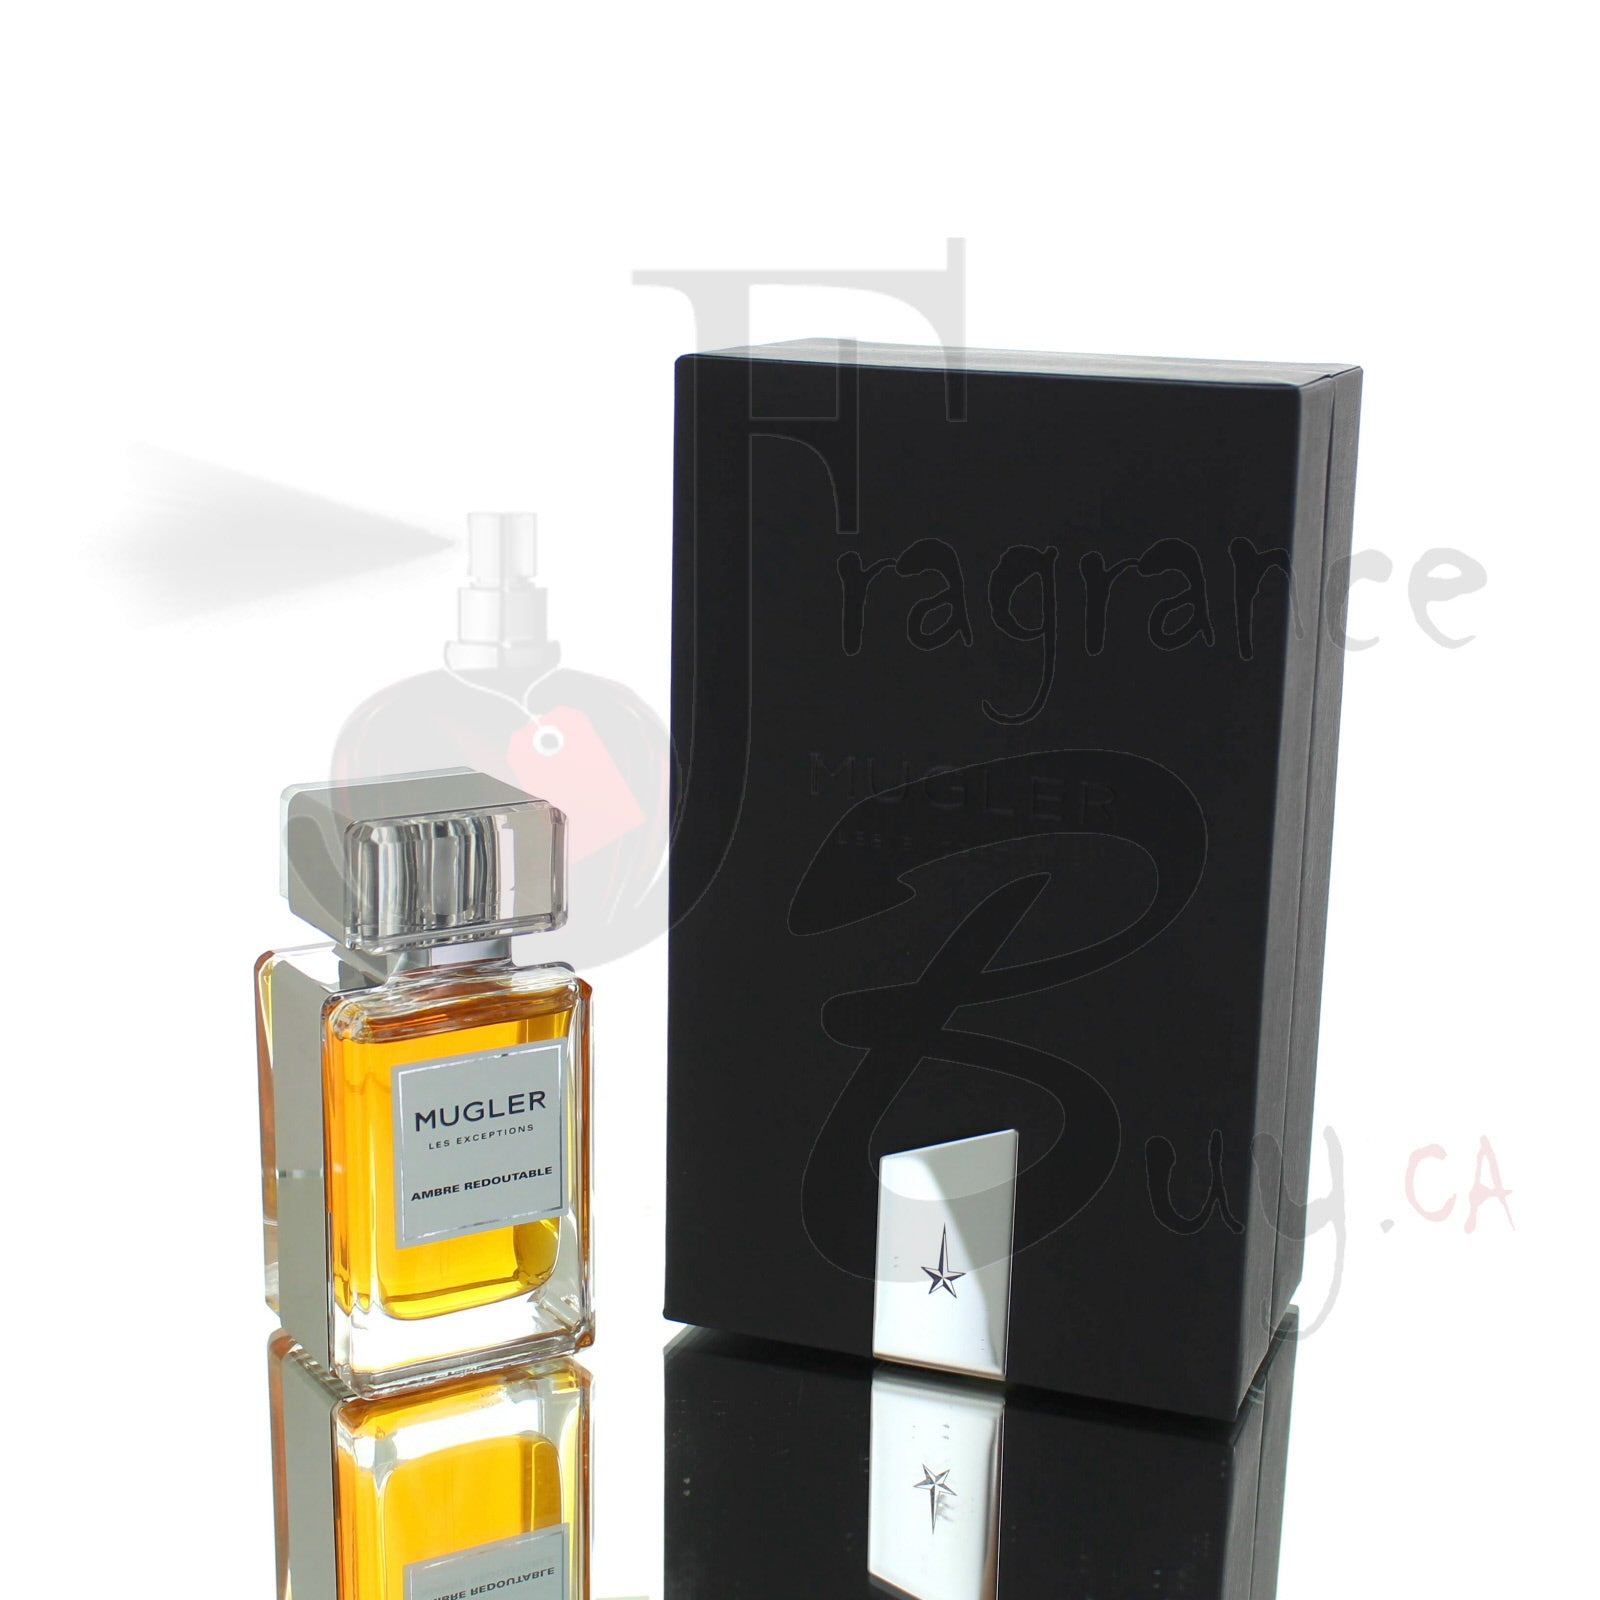 Mugler Ambre Redoutable For Man/Woman